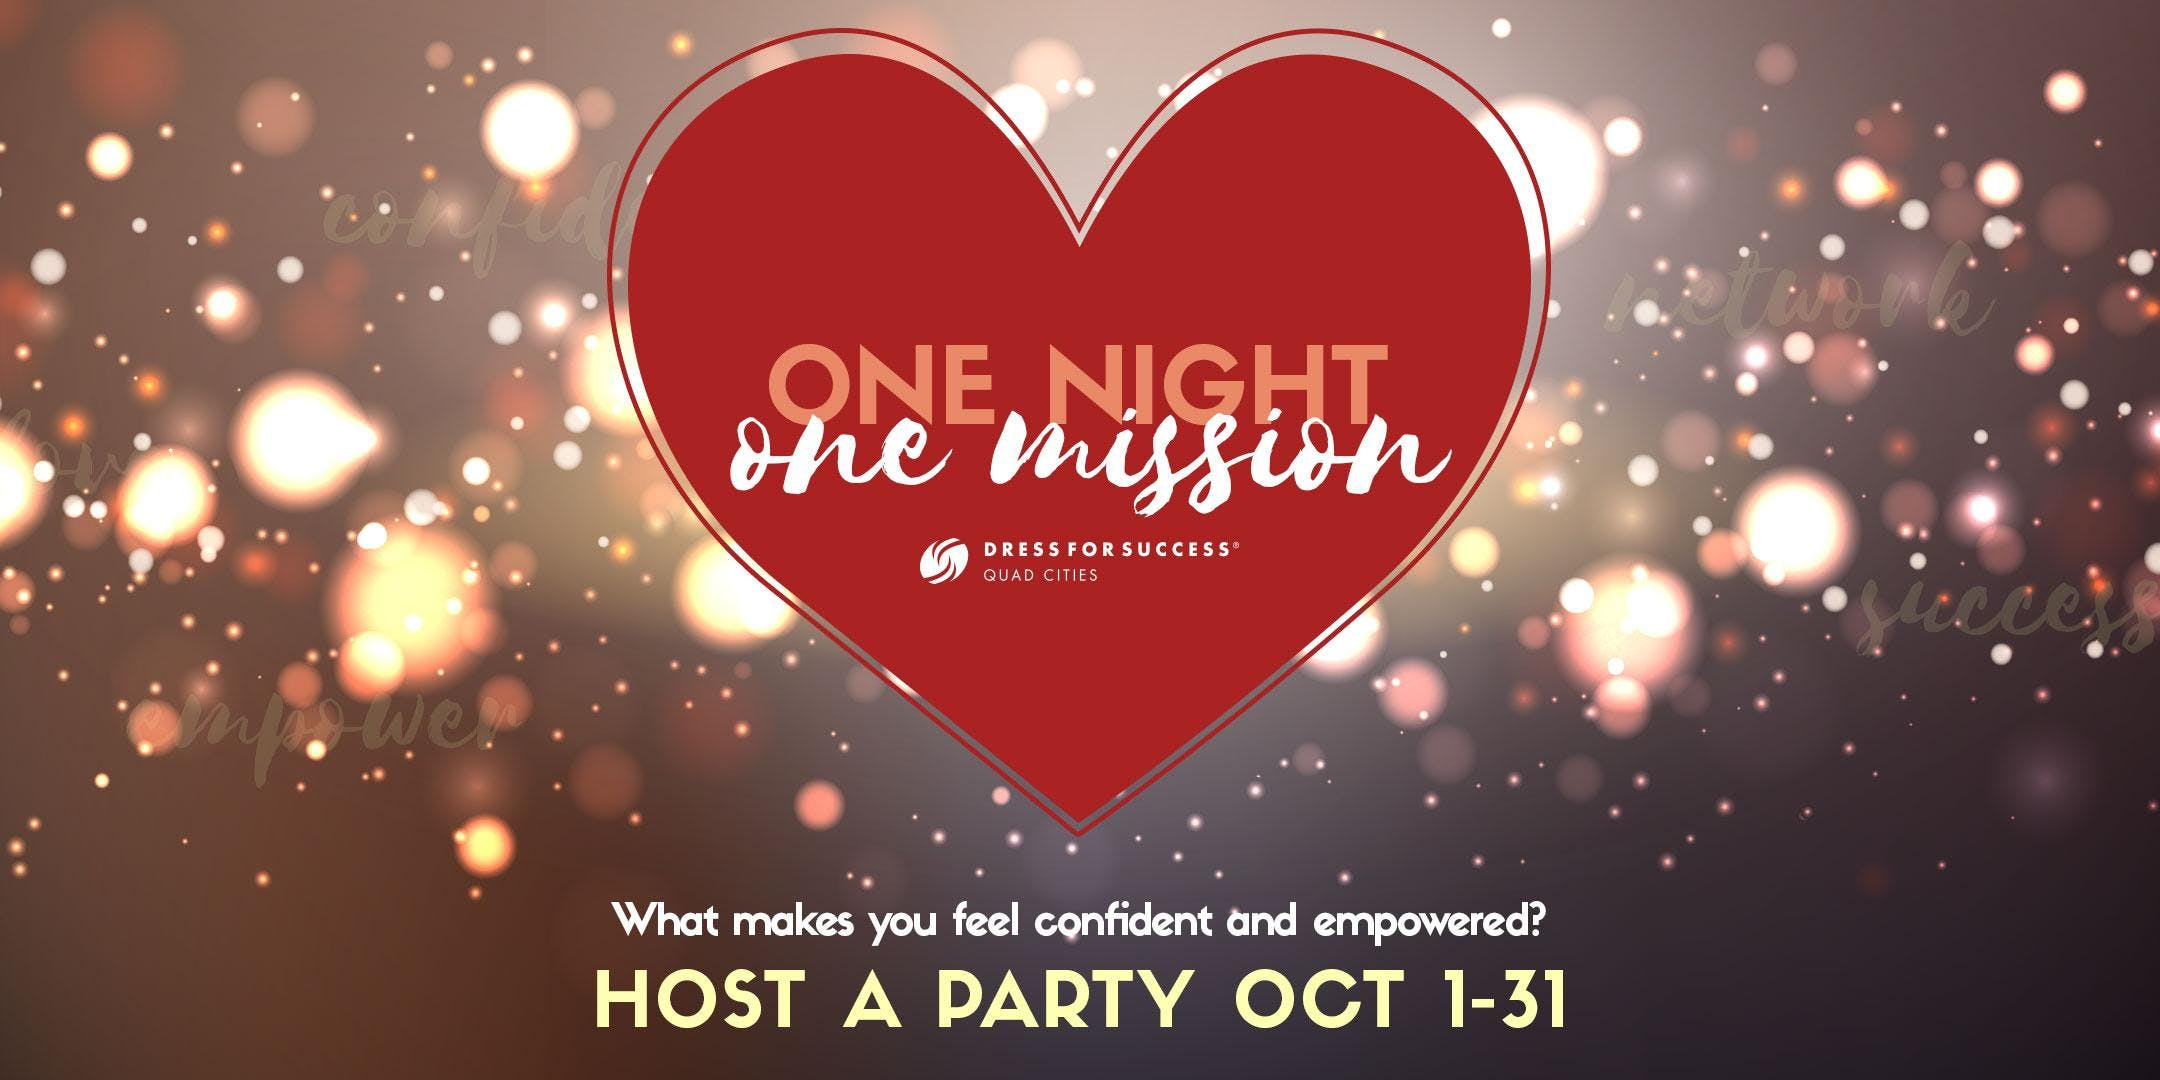 One Night One Mission 2018